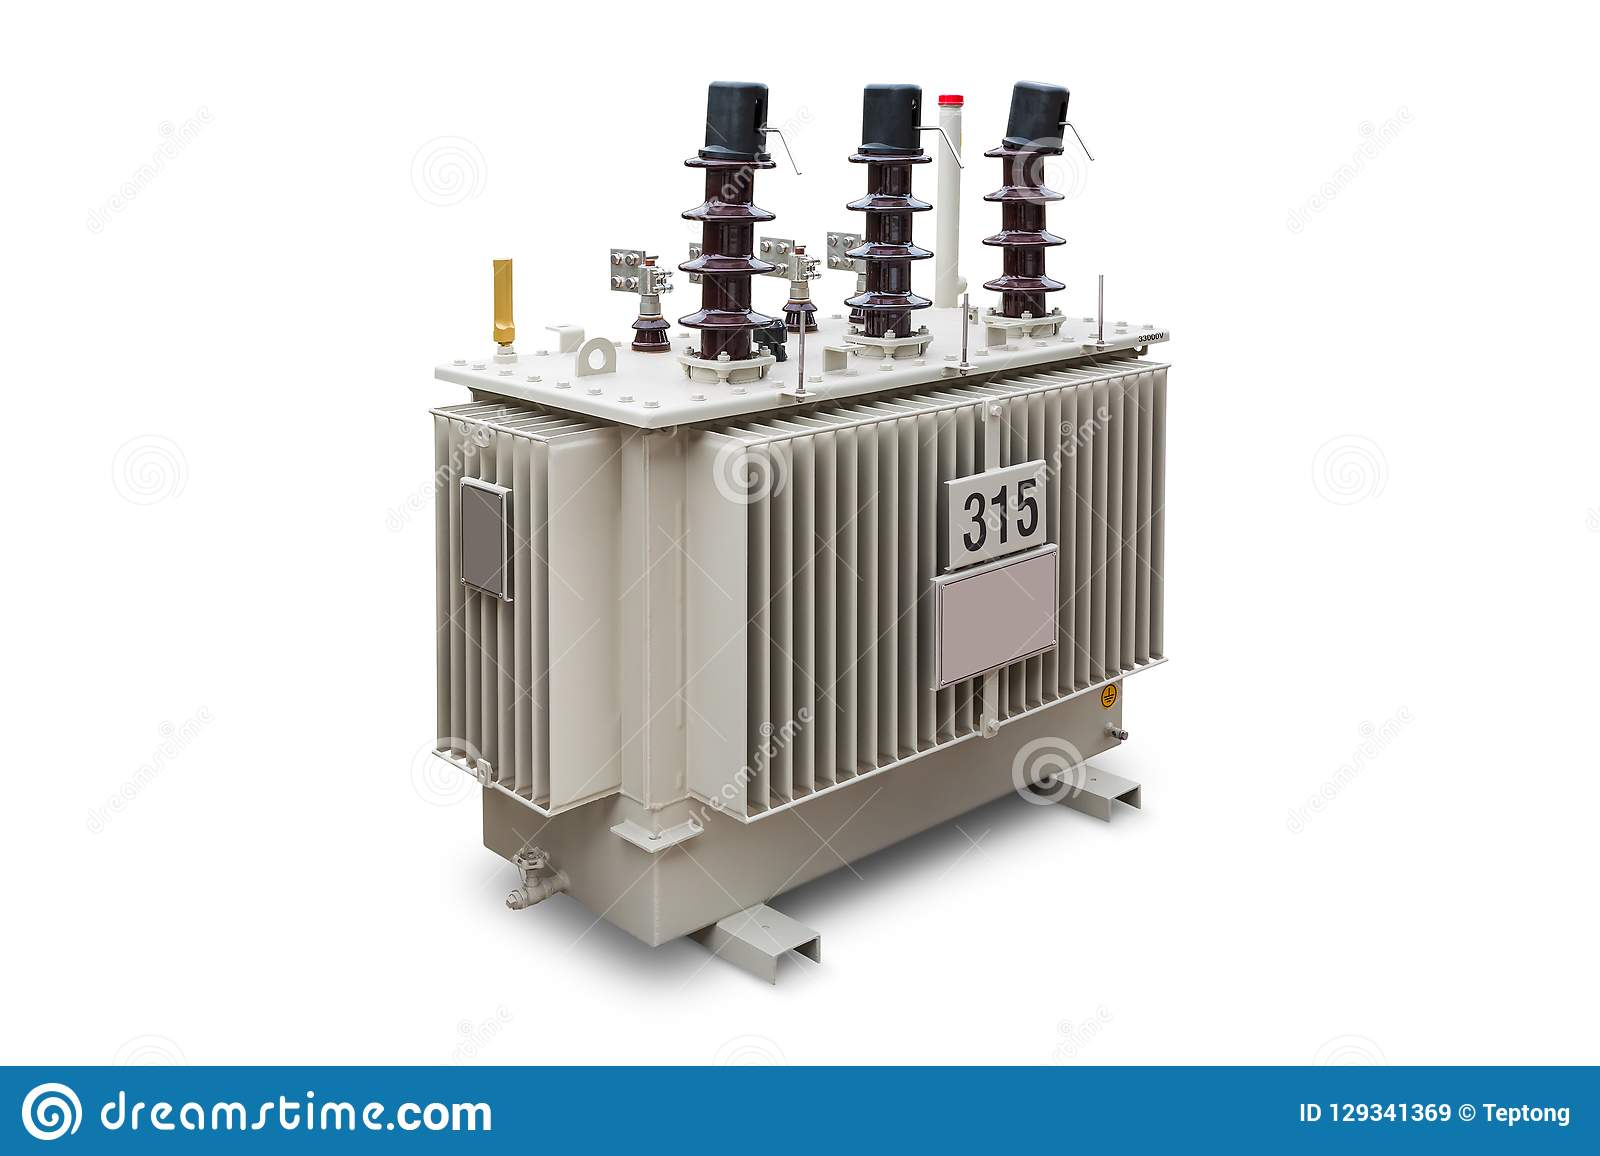 315 KVA Oil Immersed Transformer Stock Image - Image of path